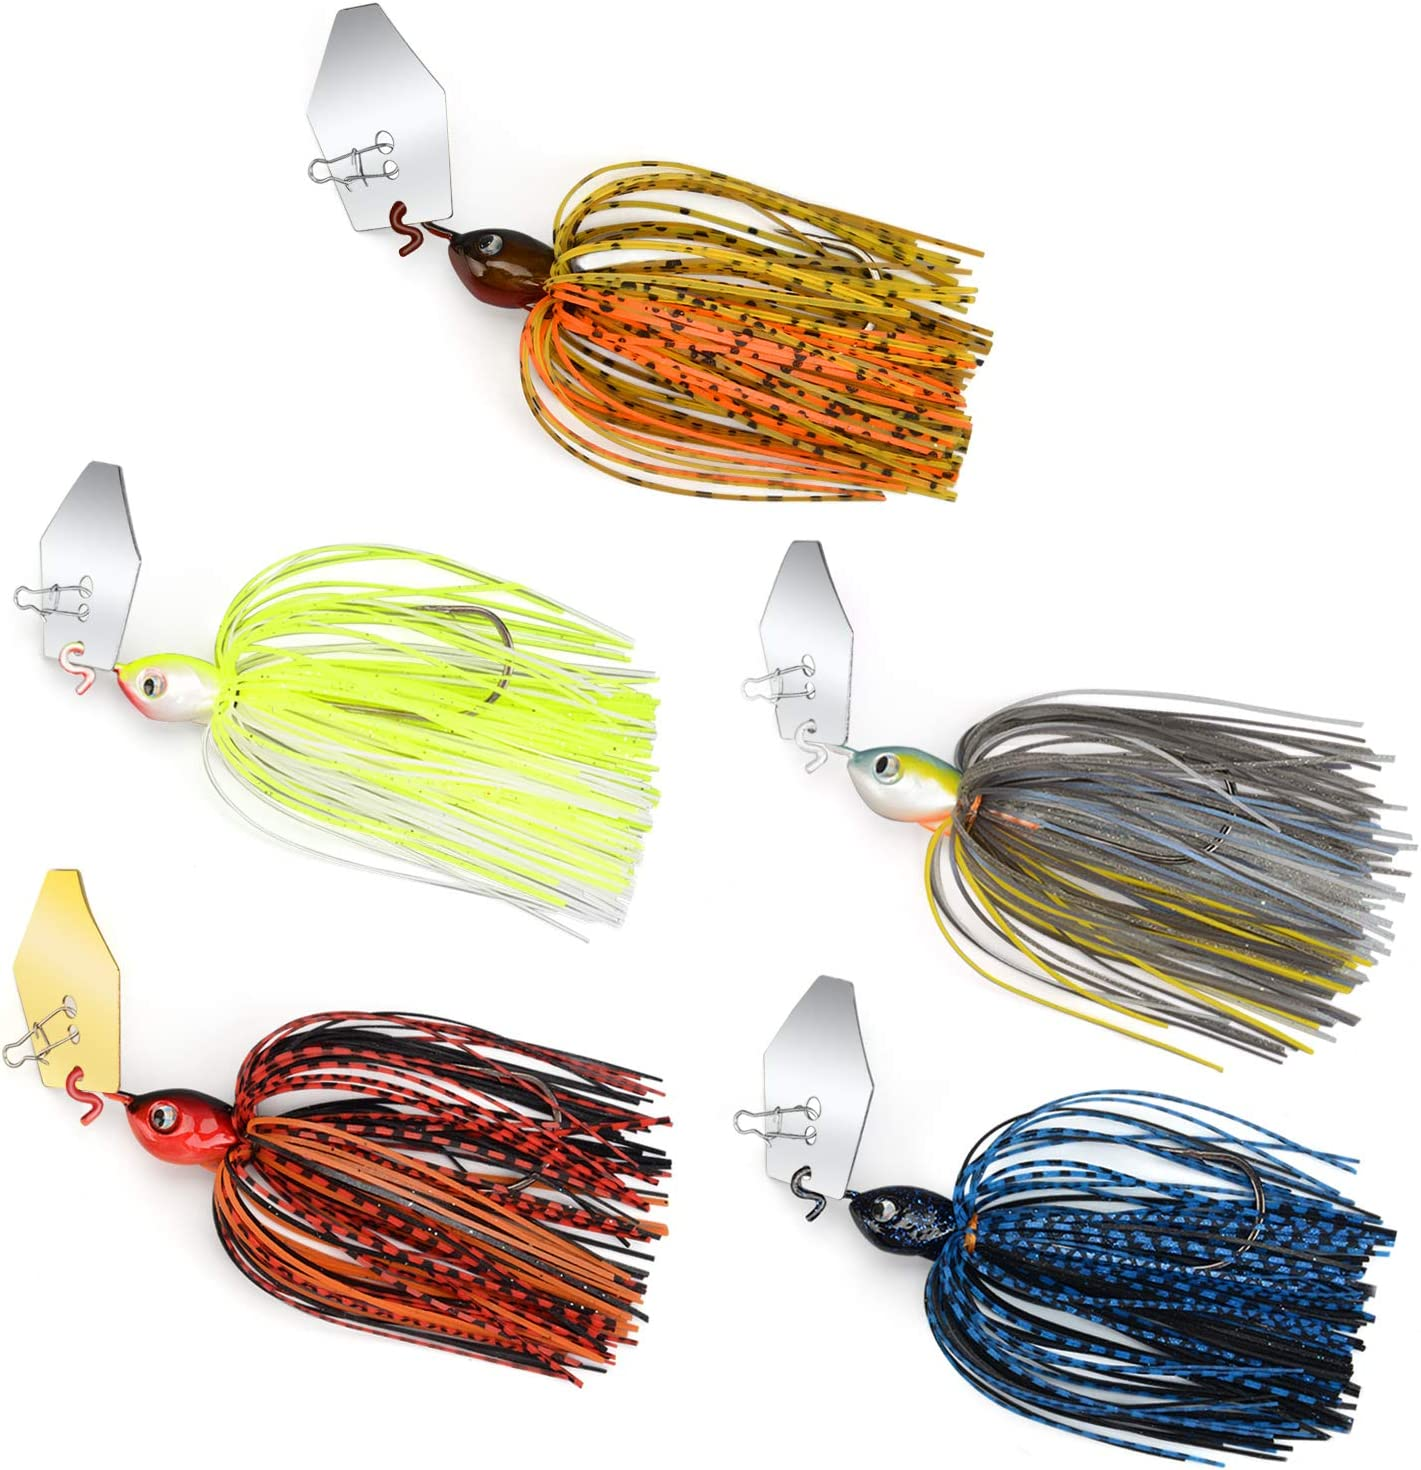 MadBite New New color Orleans Mall Bladed Jig Fishing Lures 5 and 3 pc Kits Multi-Color